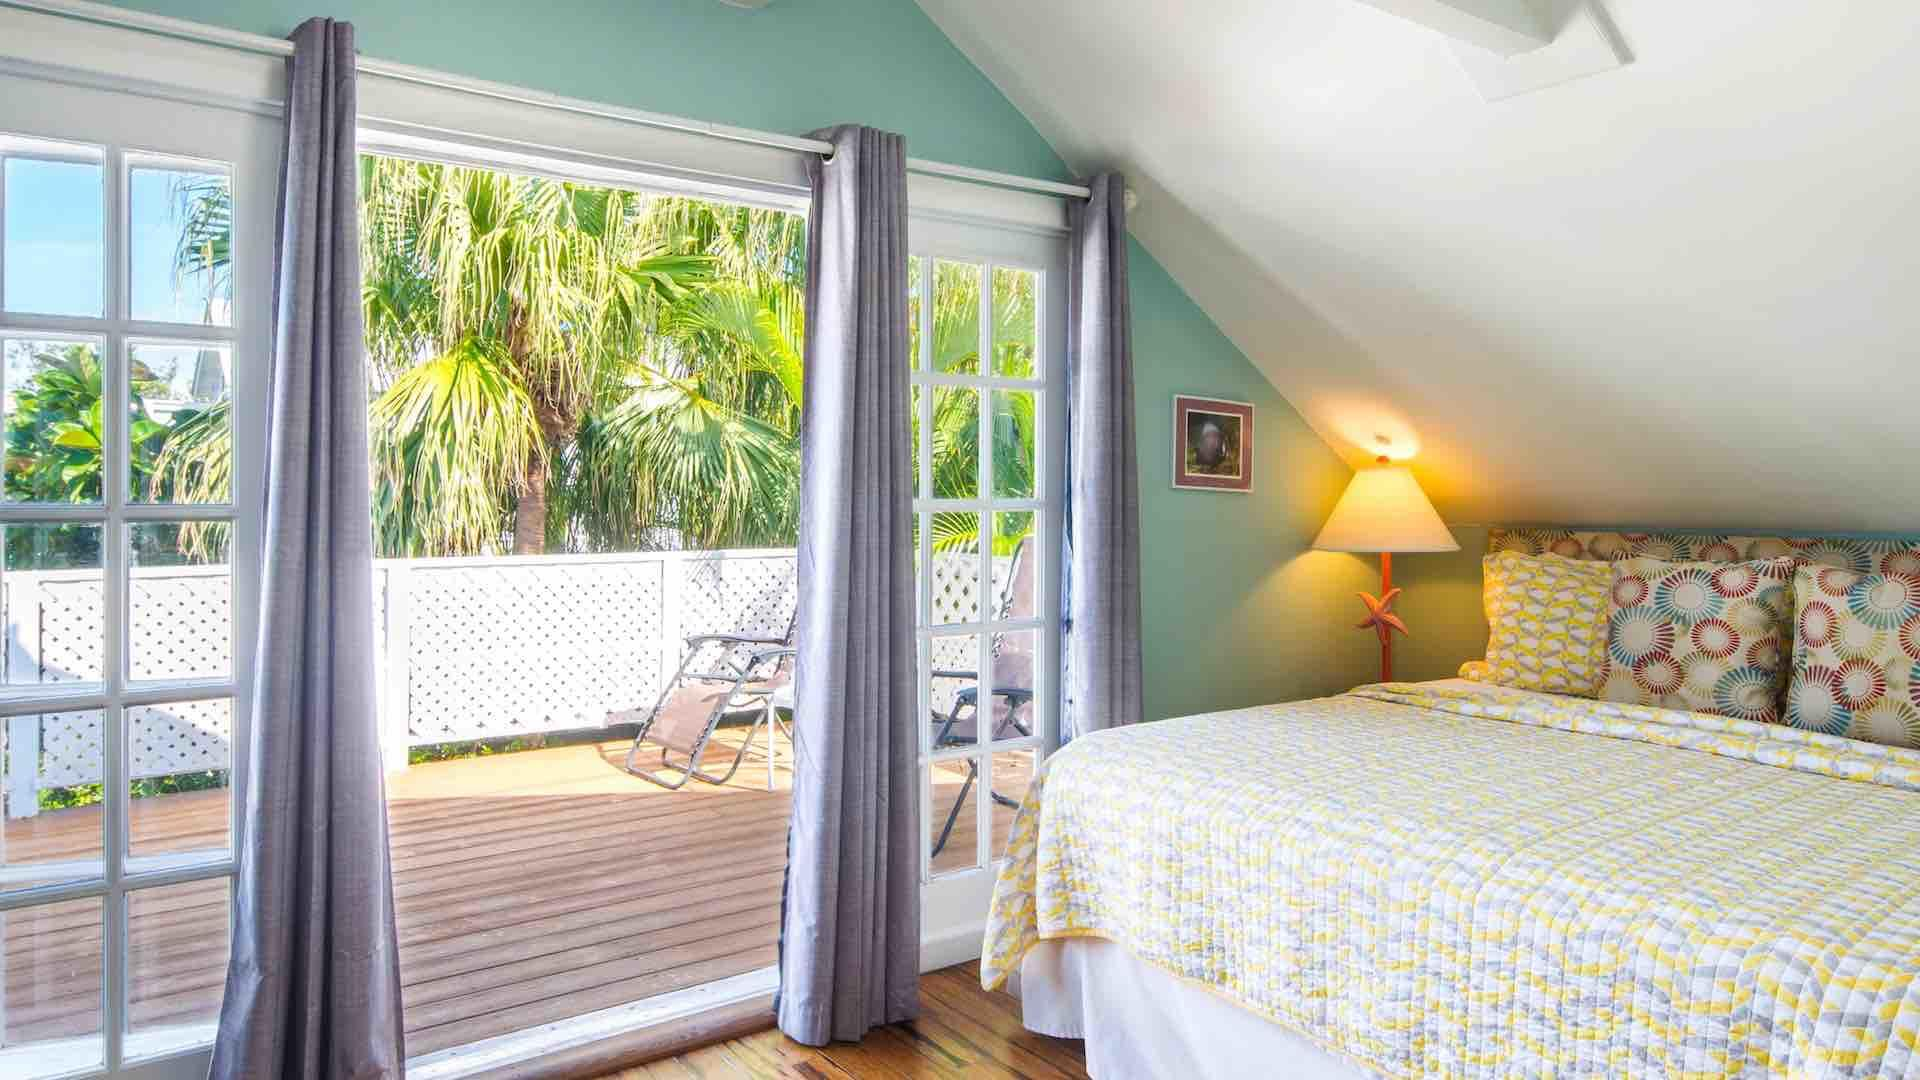 Swing open the French doors to access the balcony or let the island breezes flow through...